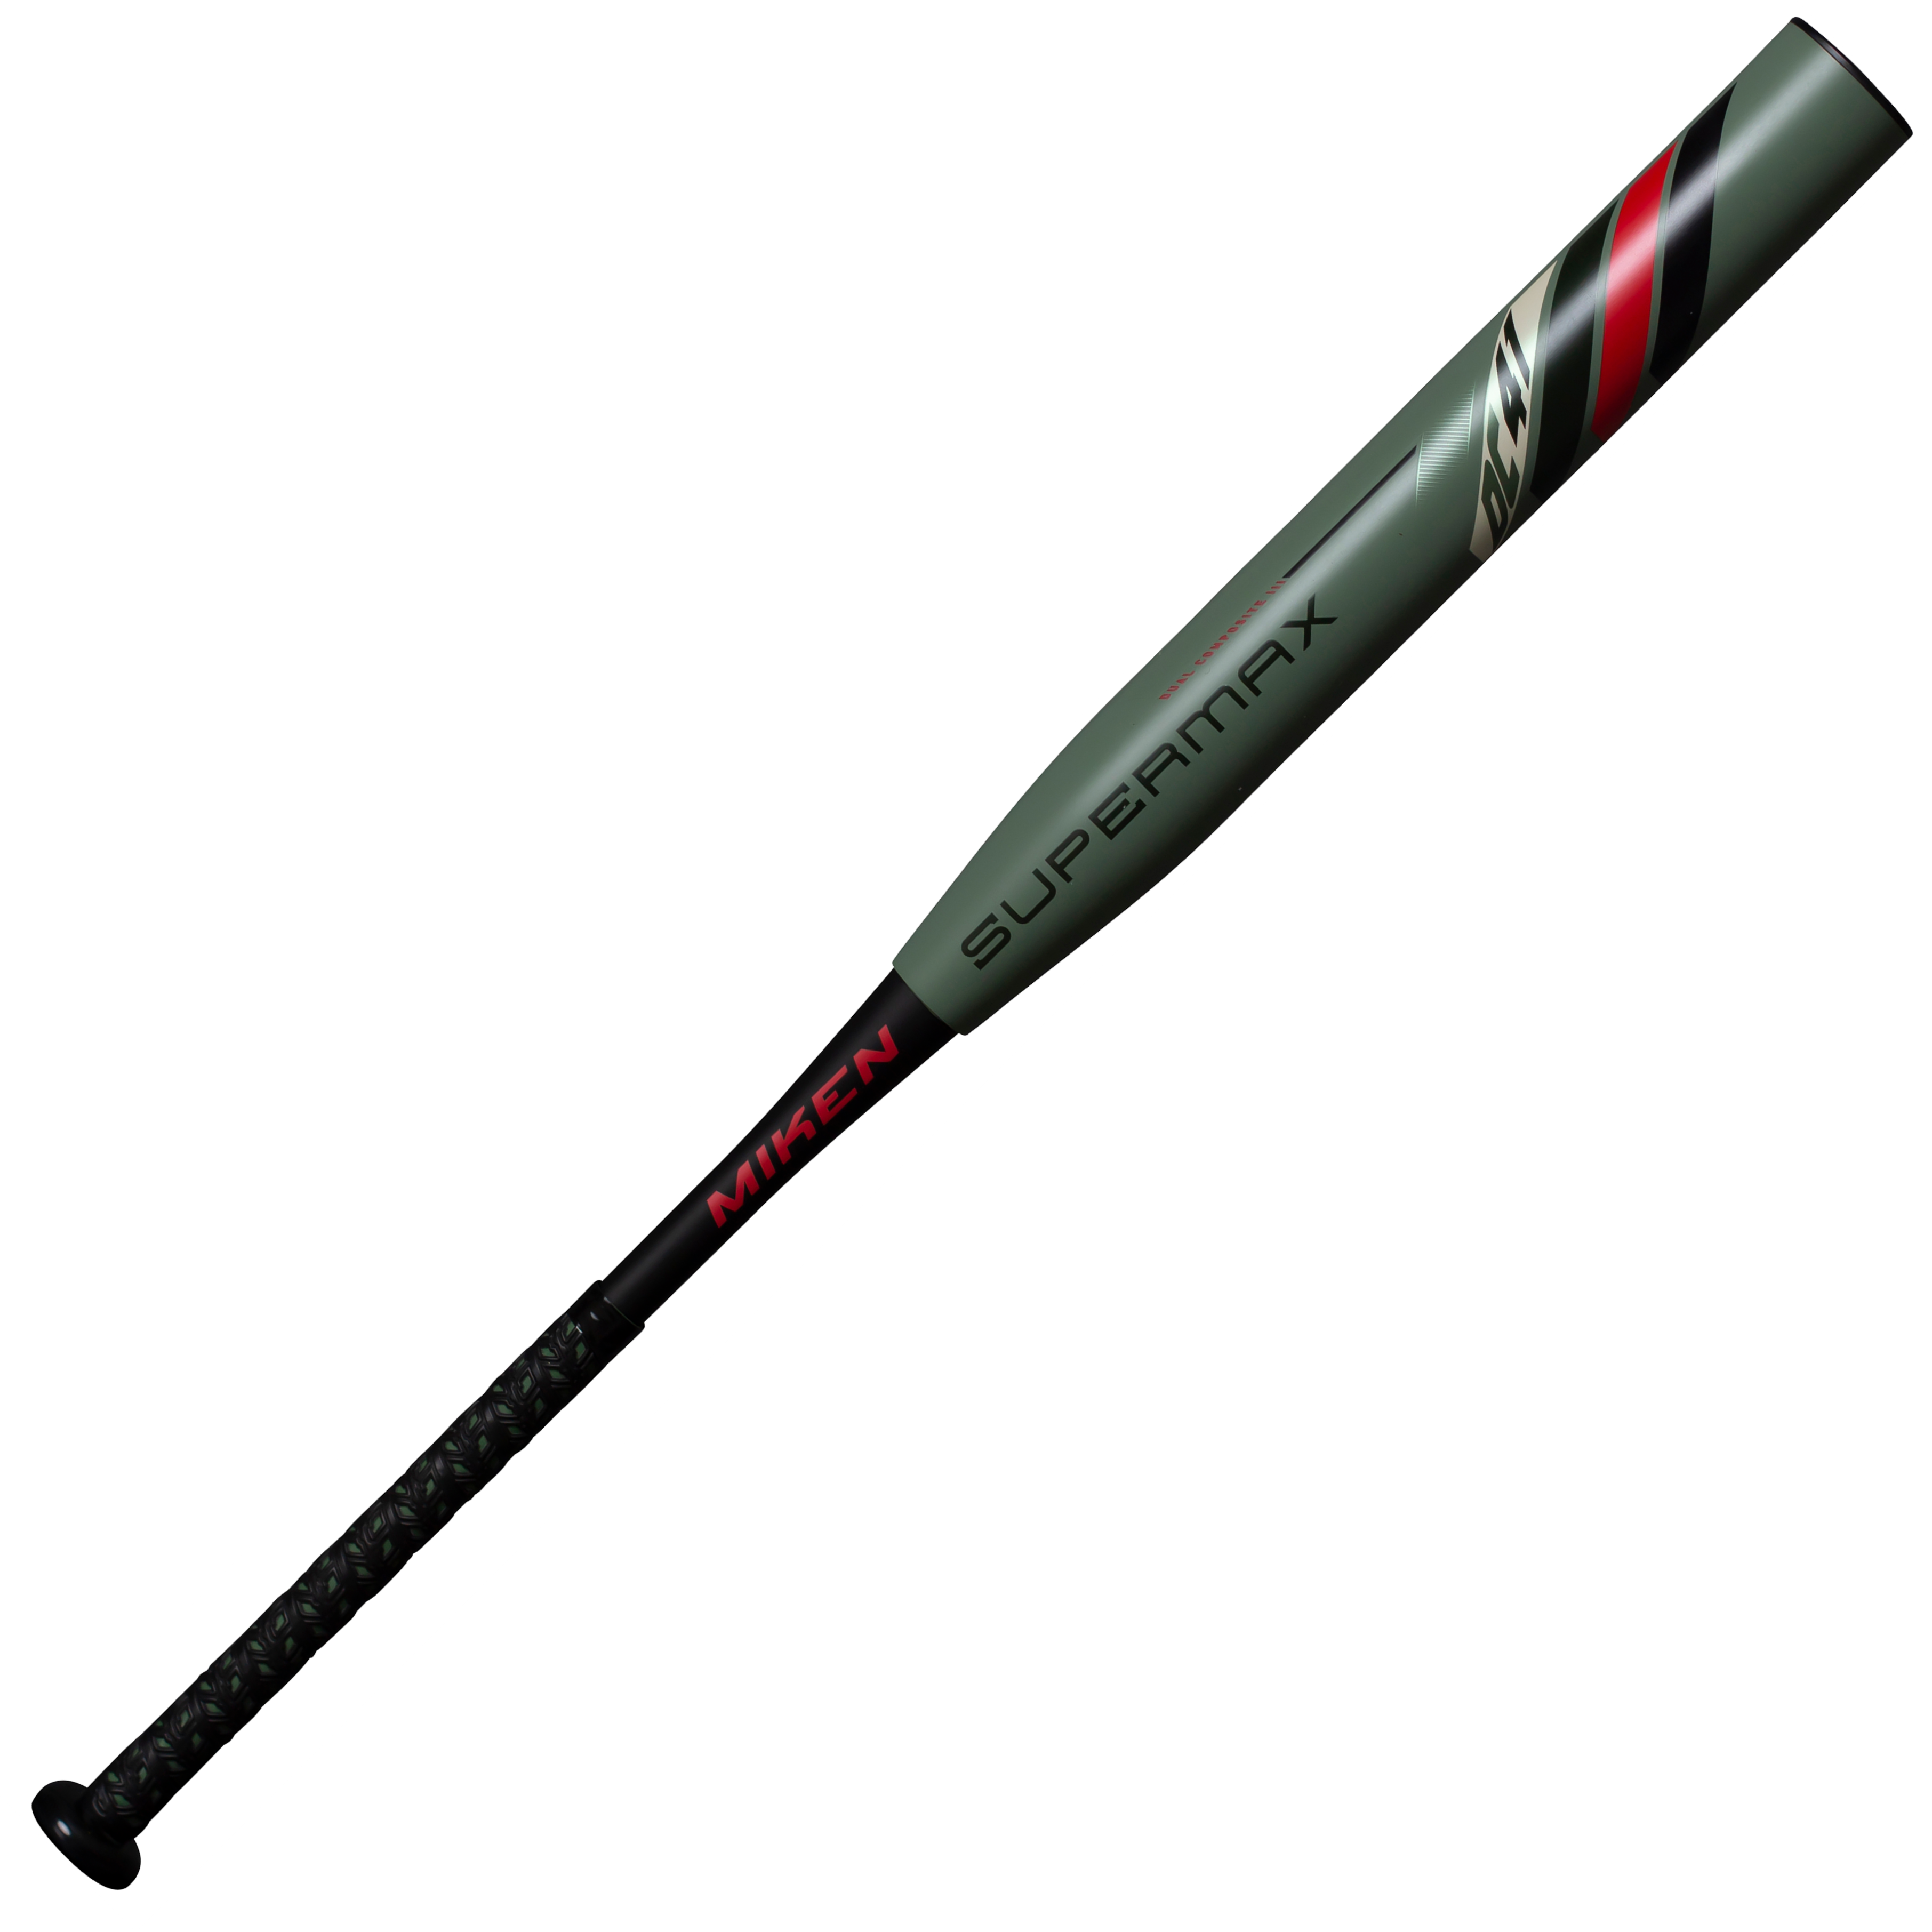 miken-2020-dc-41-14-inch-supermax-usssa-slow-pitch-softball-bat-34-inch-27-oz MDC20U-GRN-27 Miken